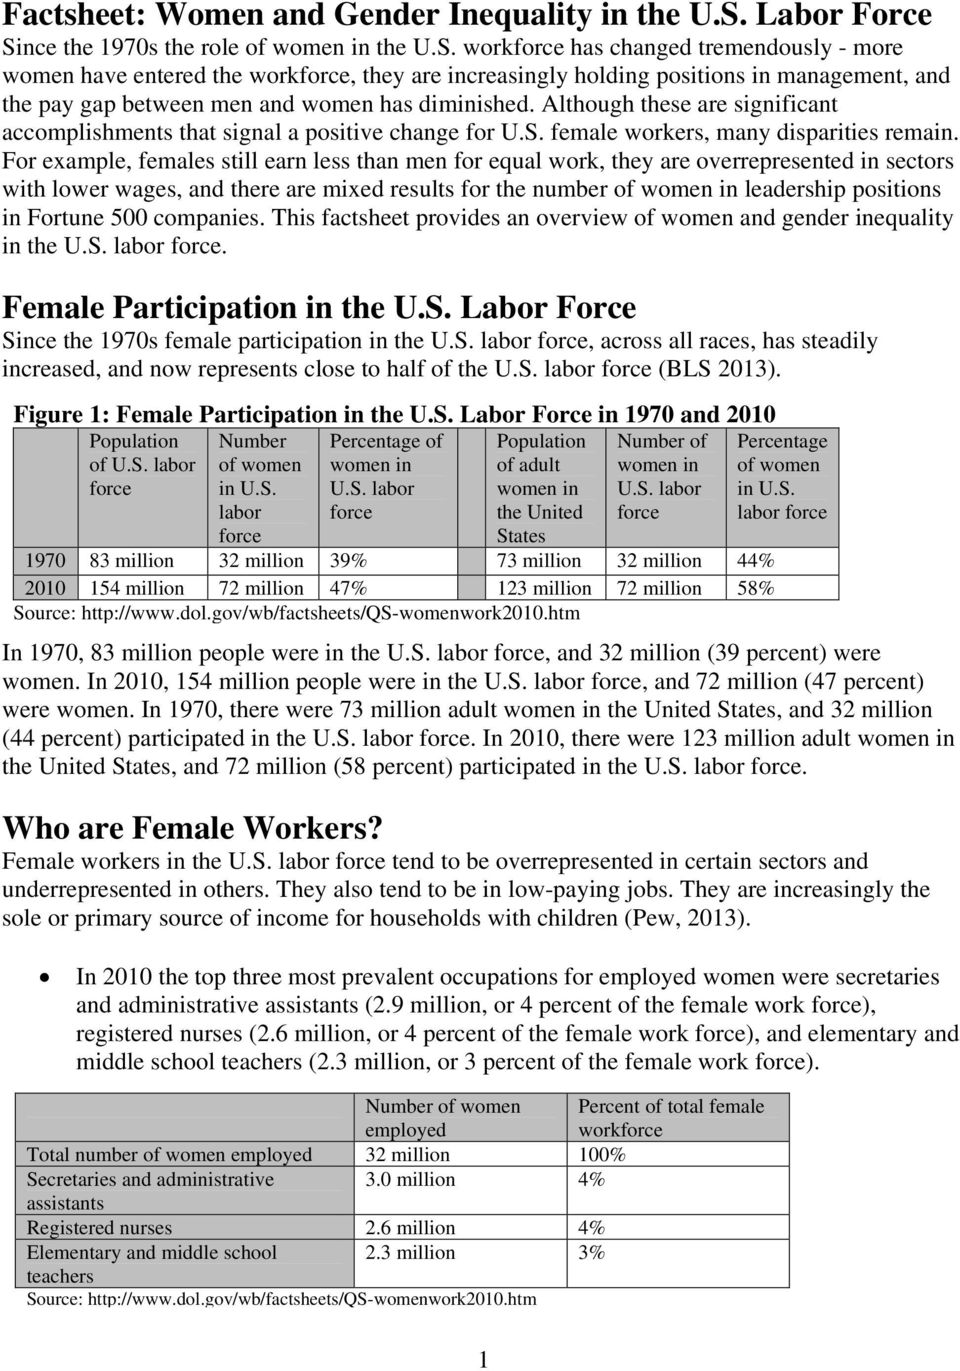 Although these are significant accomplishments that signal a positive change for U.S. female workers, many disparities remain.